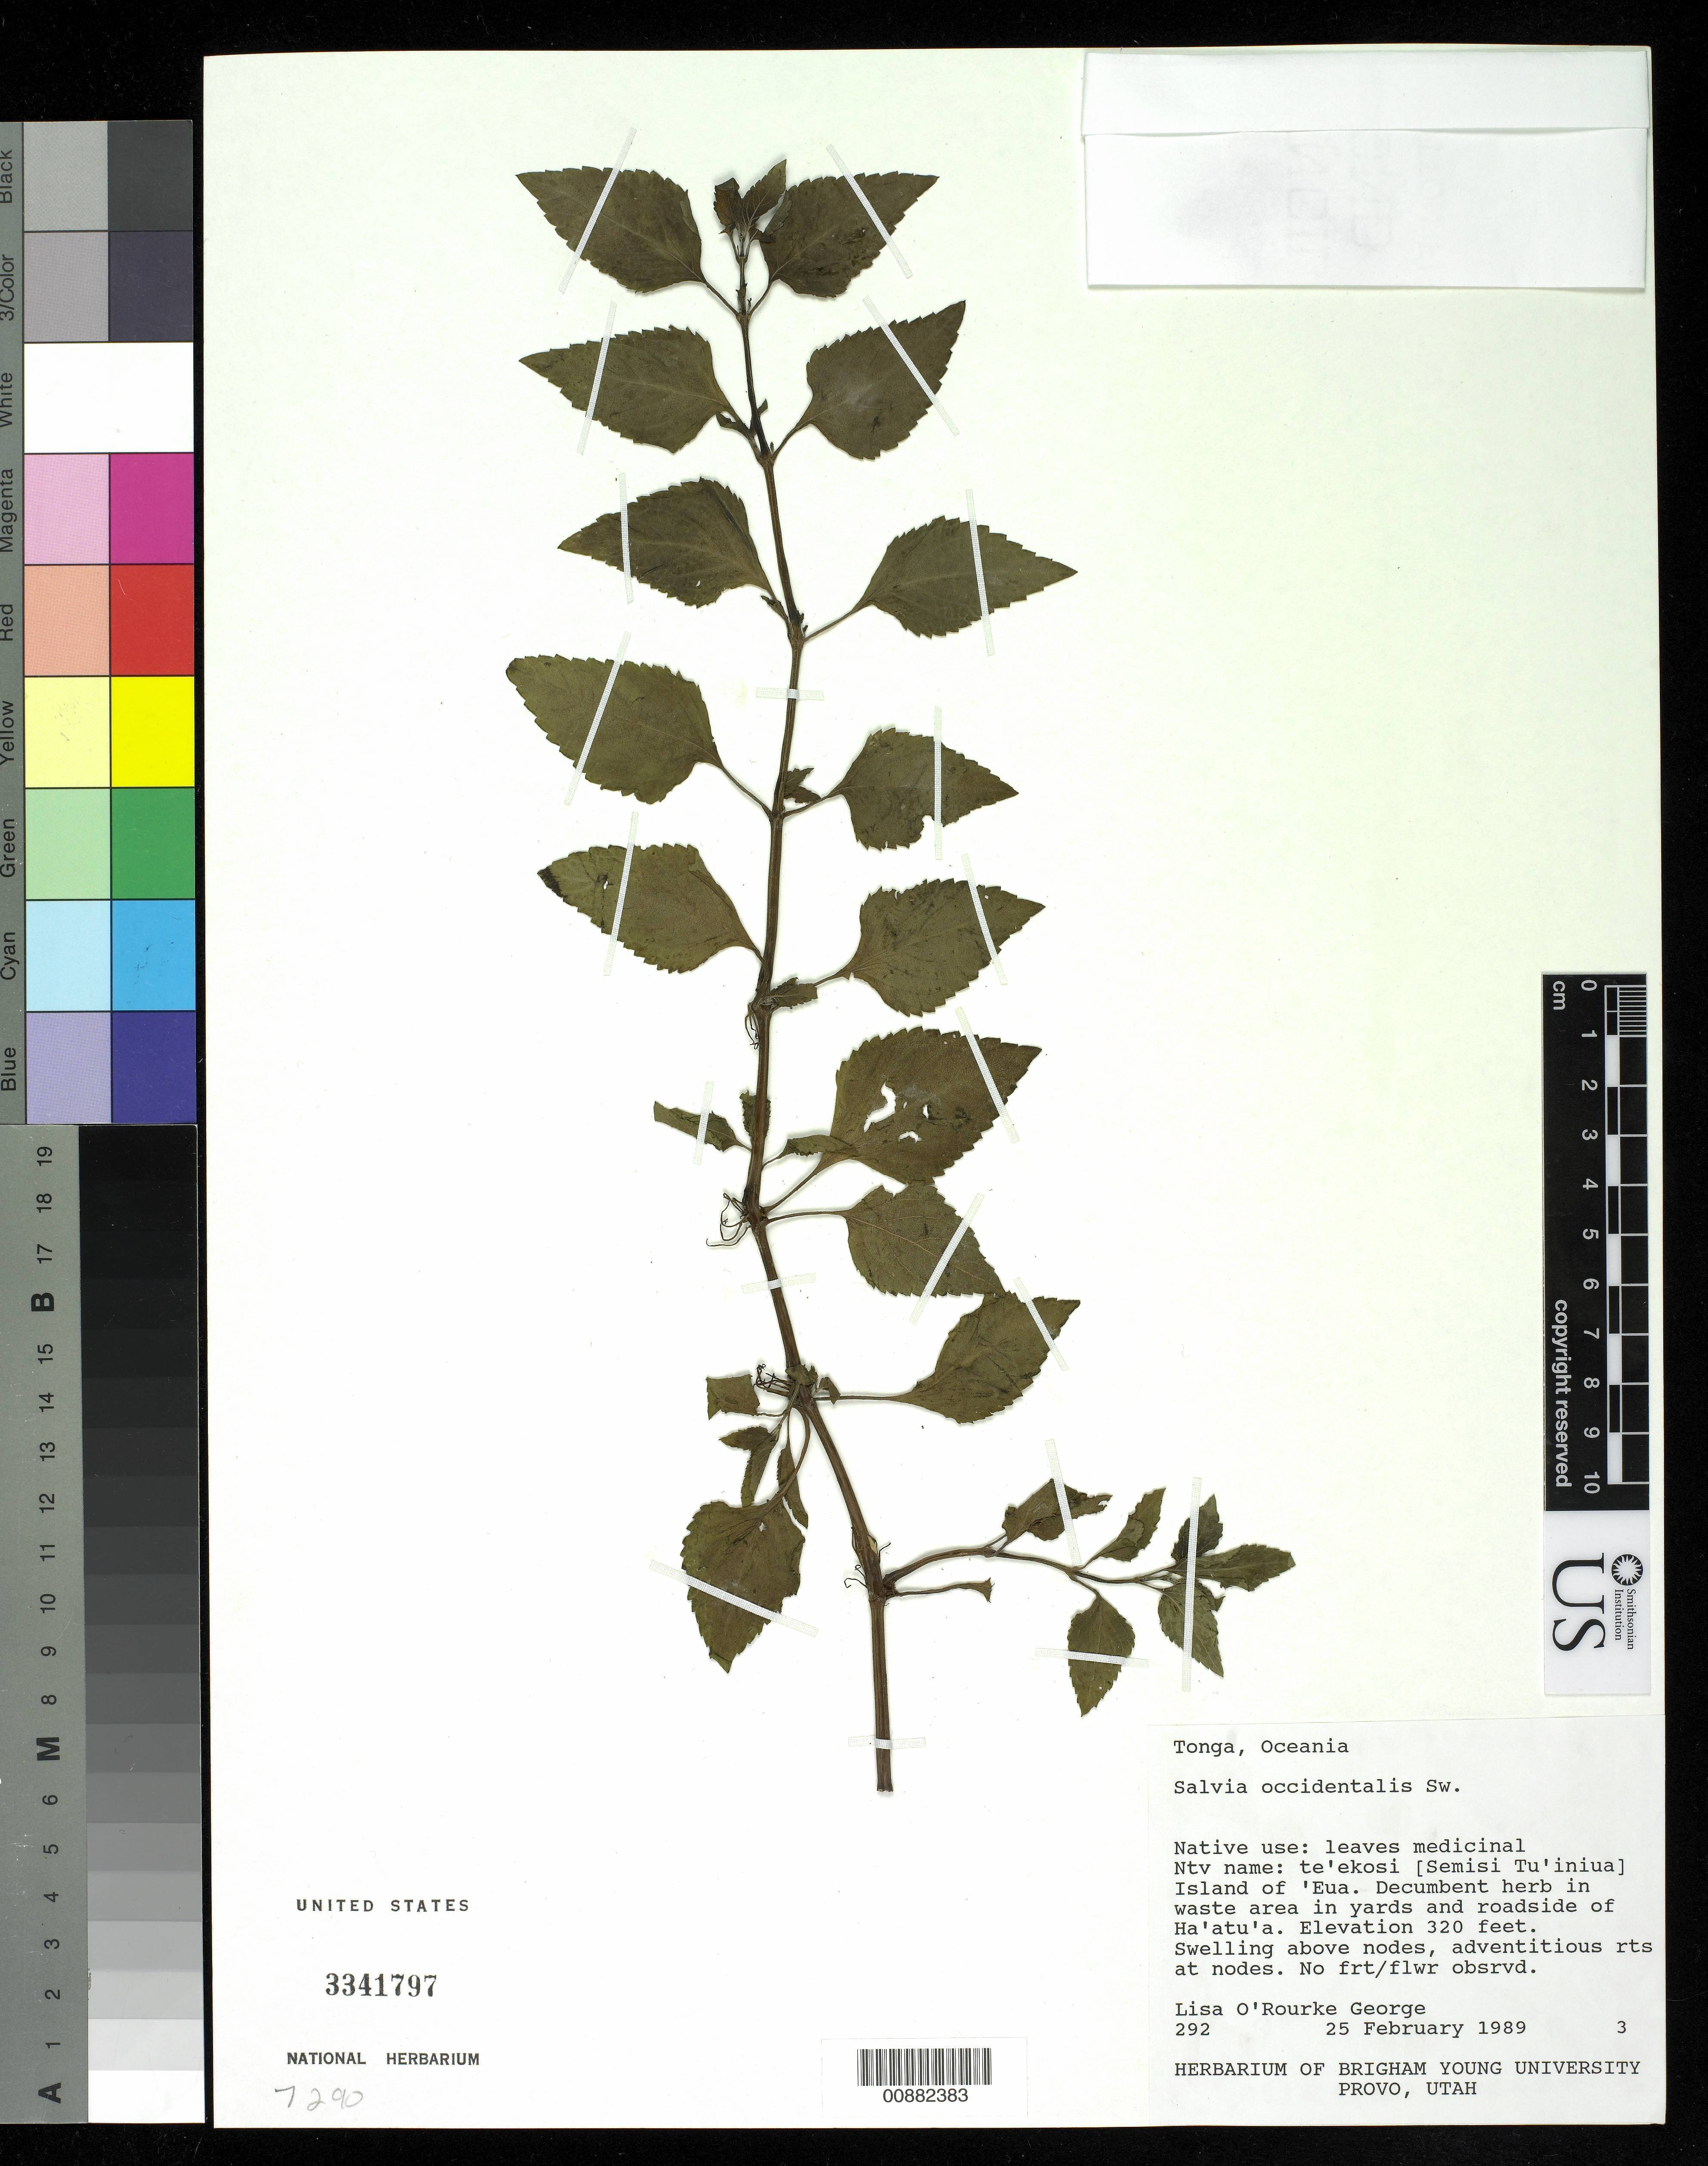 Image of West Indian sage